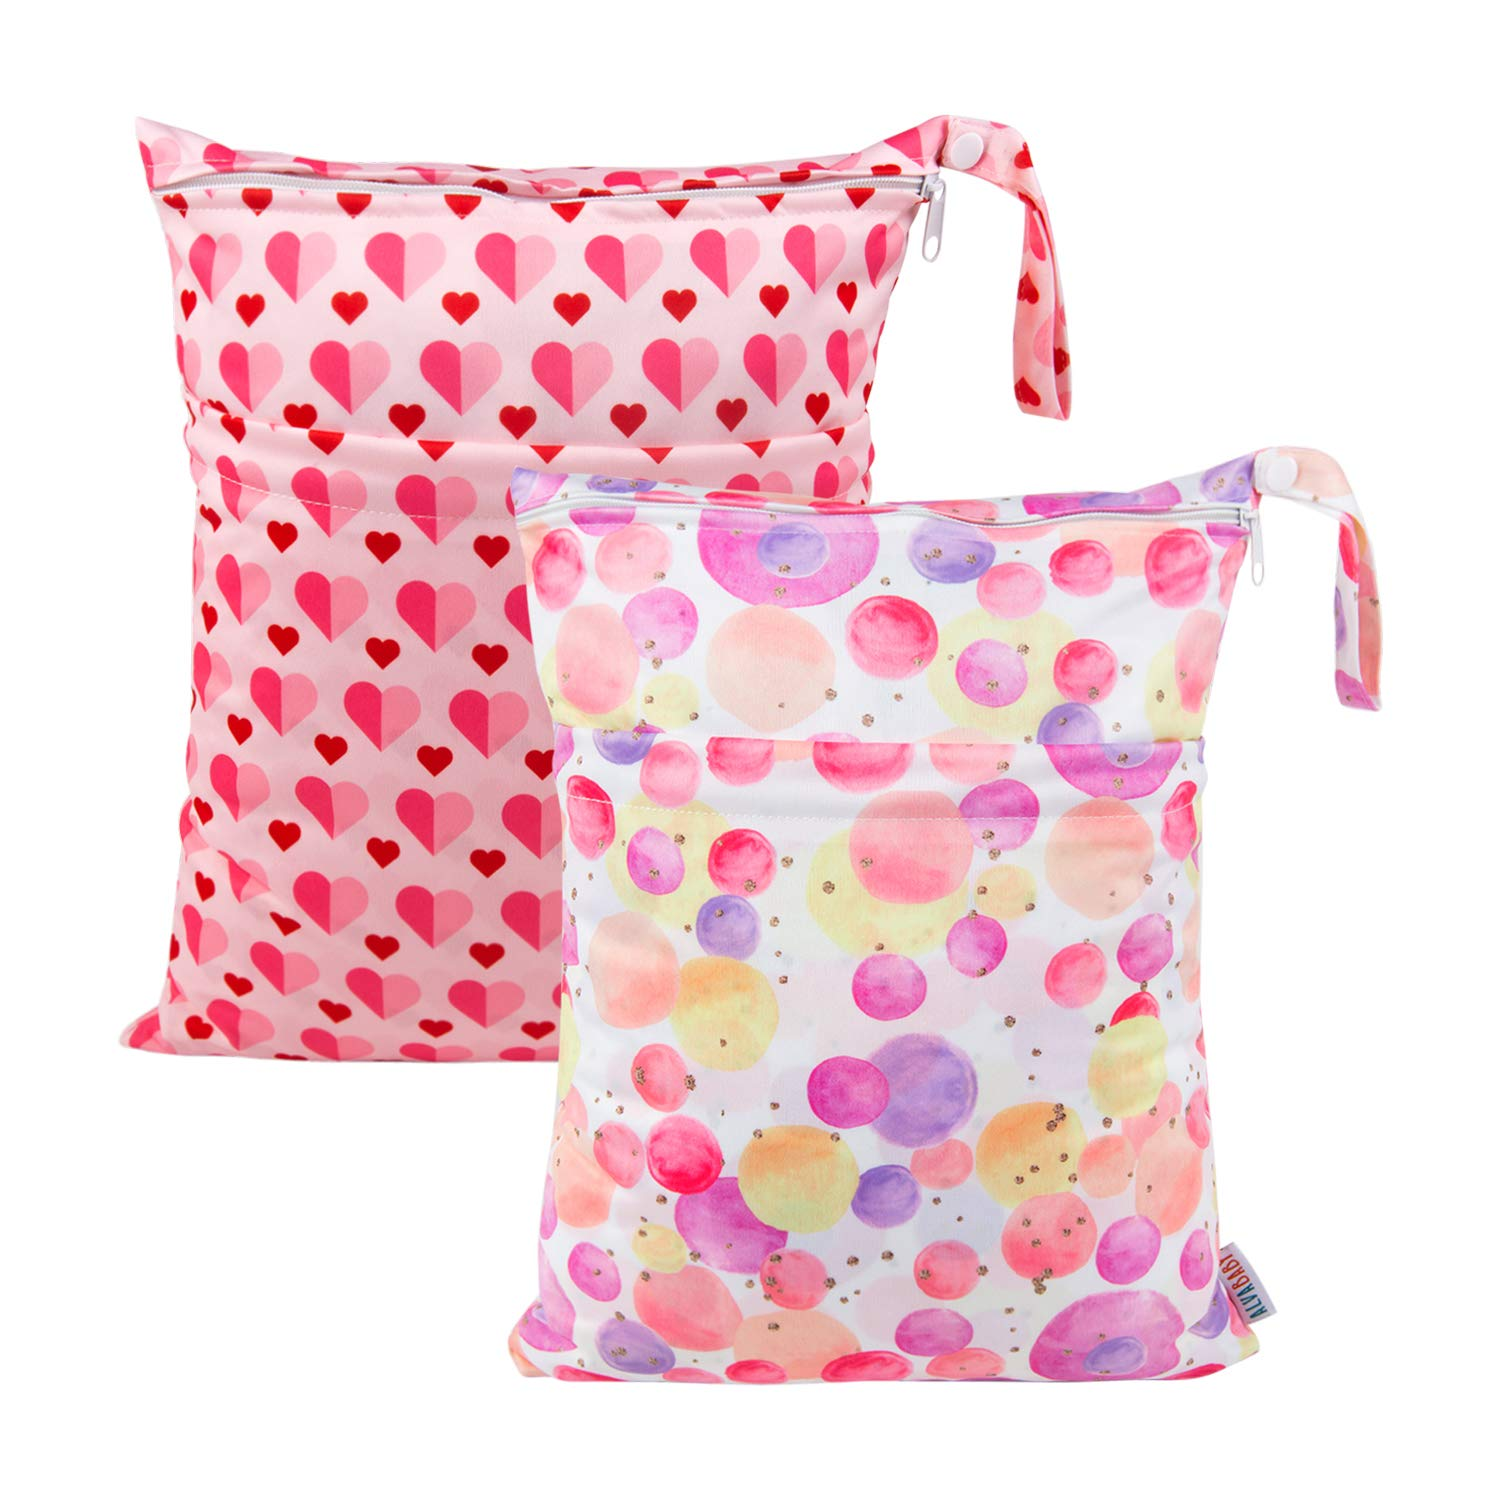 ALVABABY Cloth Diaper Wet/Dry Bags Waterproof Reusable Washable with Two Zippered Pockets Travel,Beach,Pool,Daycare,Soiled Baby Items,Yoga,Gym Bag for Swimsuits or Wet Clothes 2 Pack LZ0102-CA LZ0102-460-CA